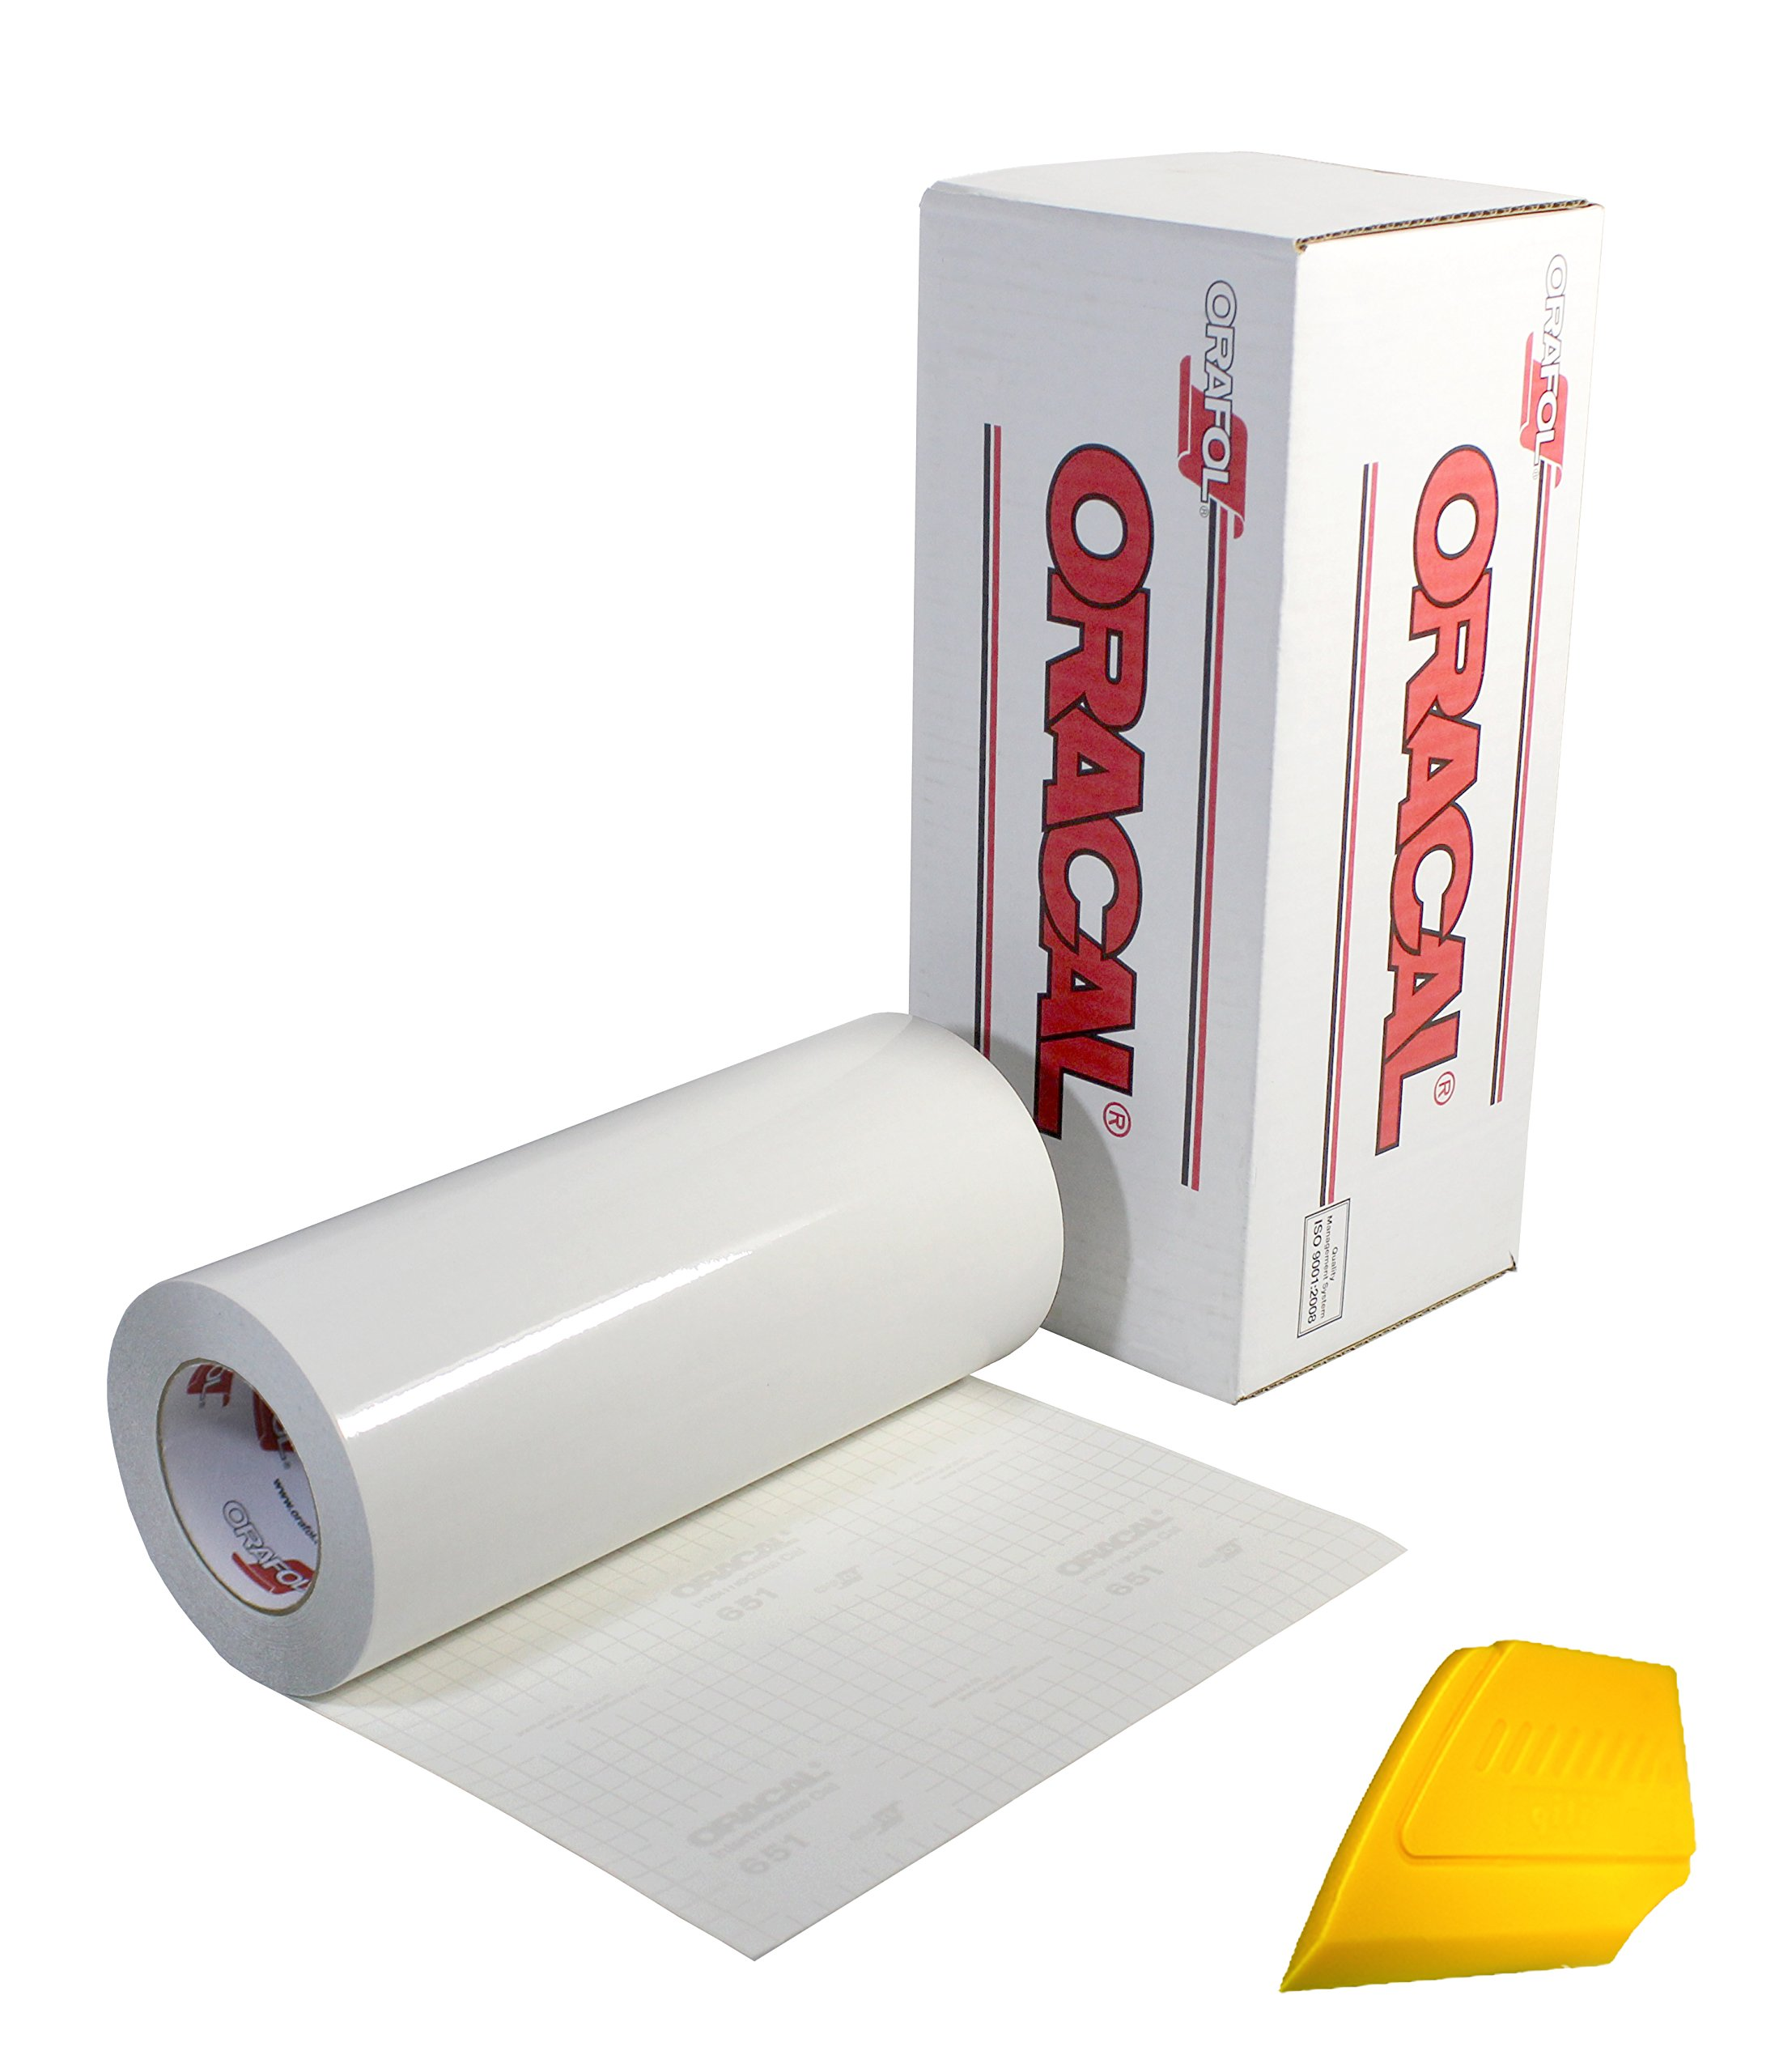 ORACAL Transparent Transfer Paper Tape Roll w/Hard Yellow Detailer Squeegee (100ft x 12'') by ORACAL